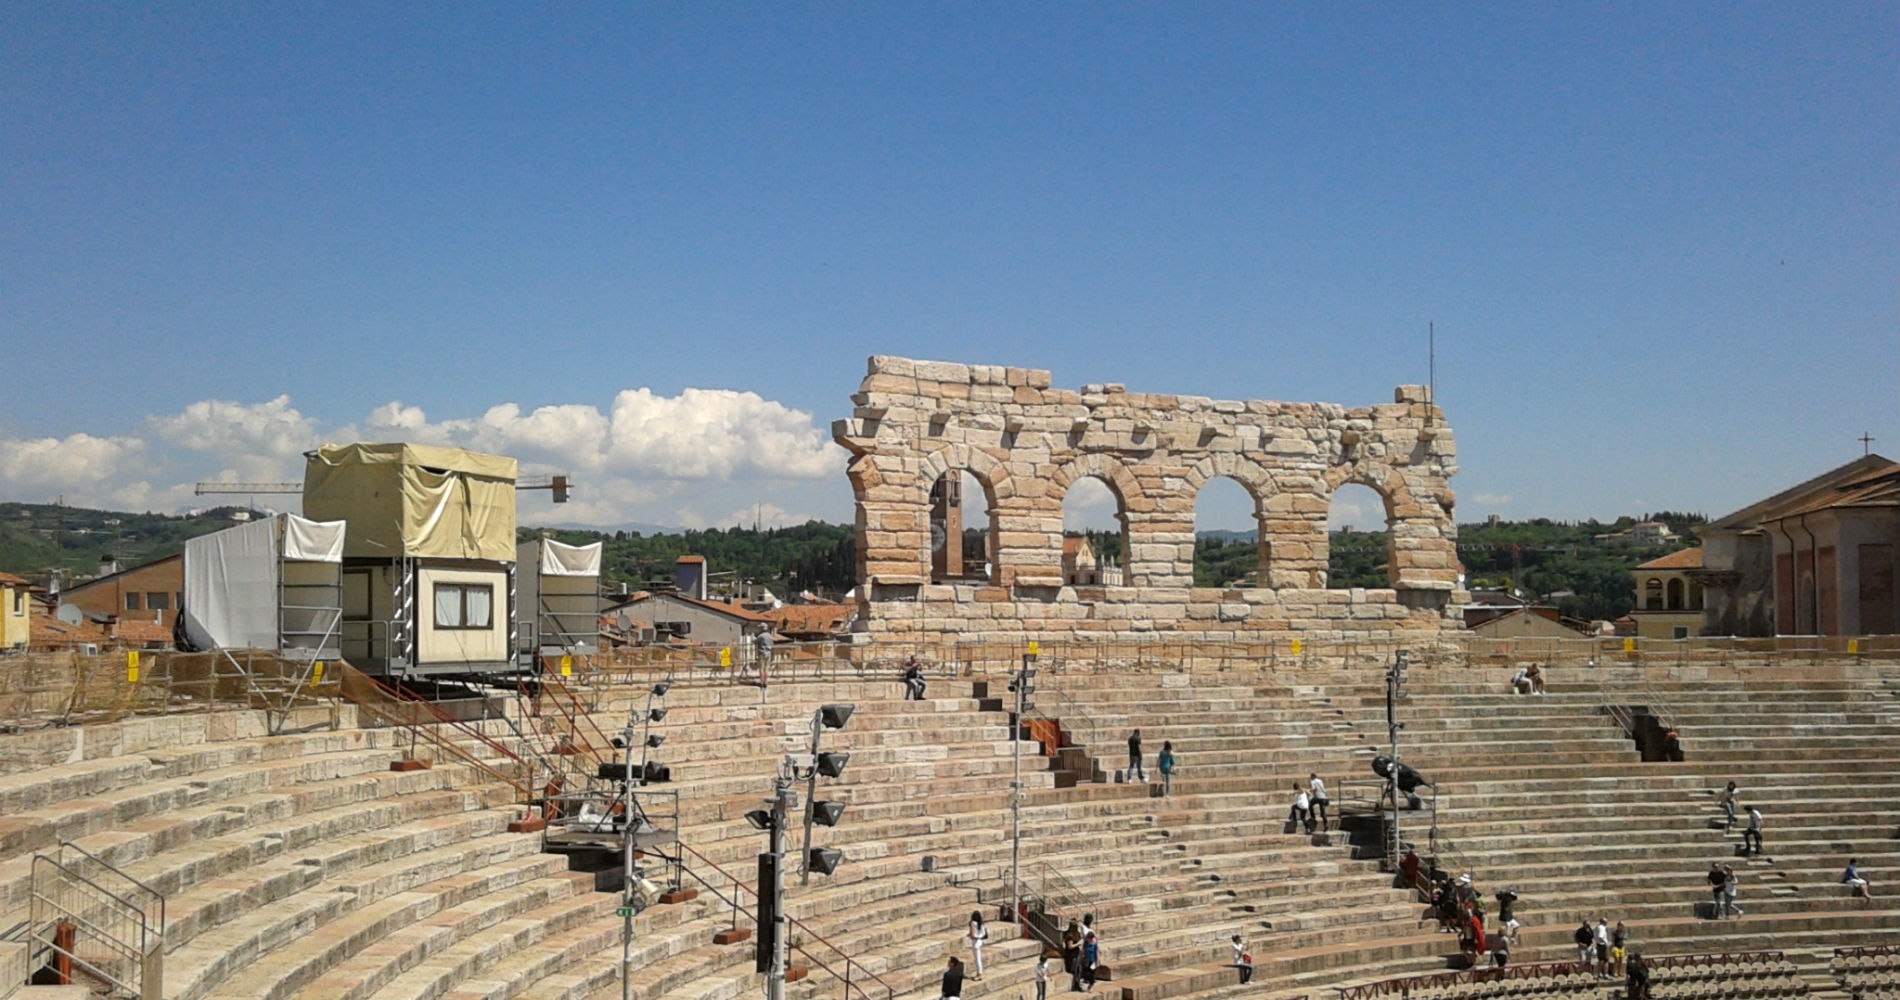 From gladiators to lyrics: welcome to the Arena